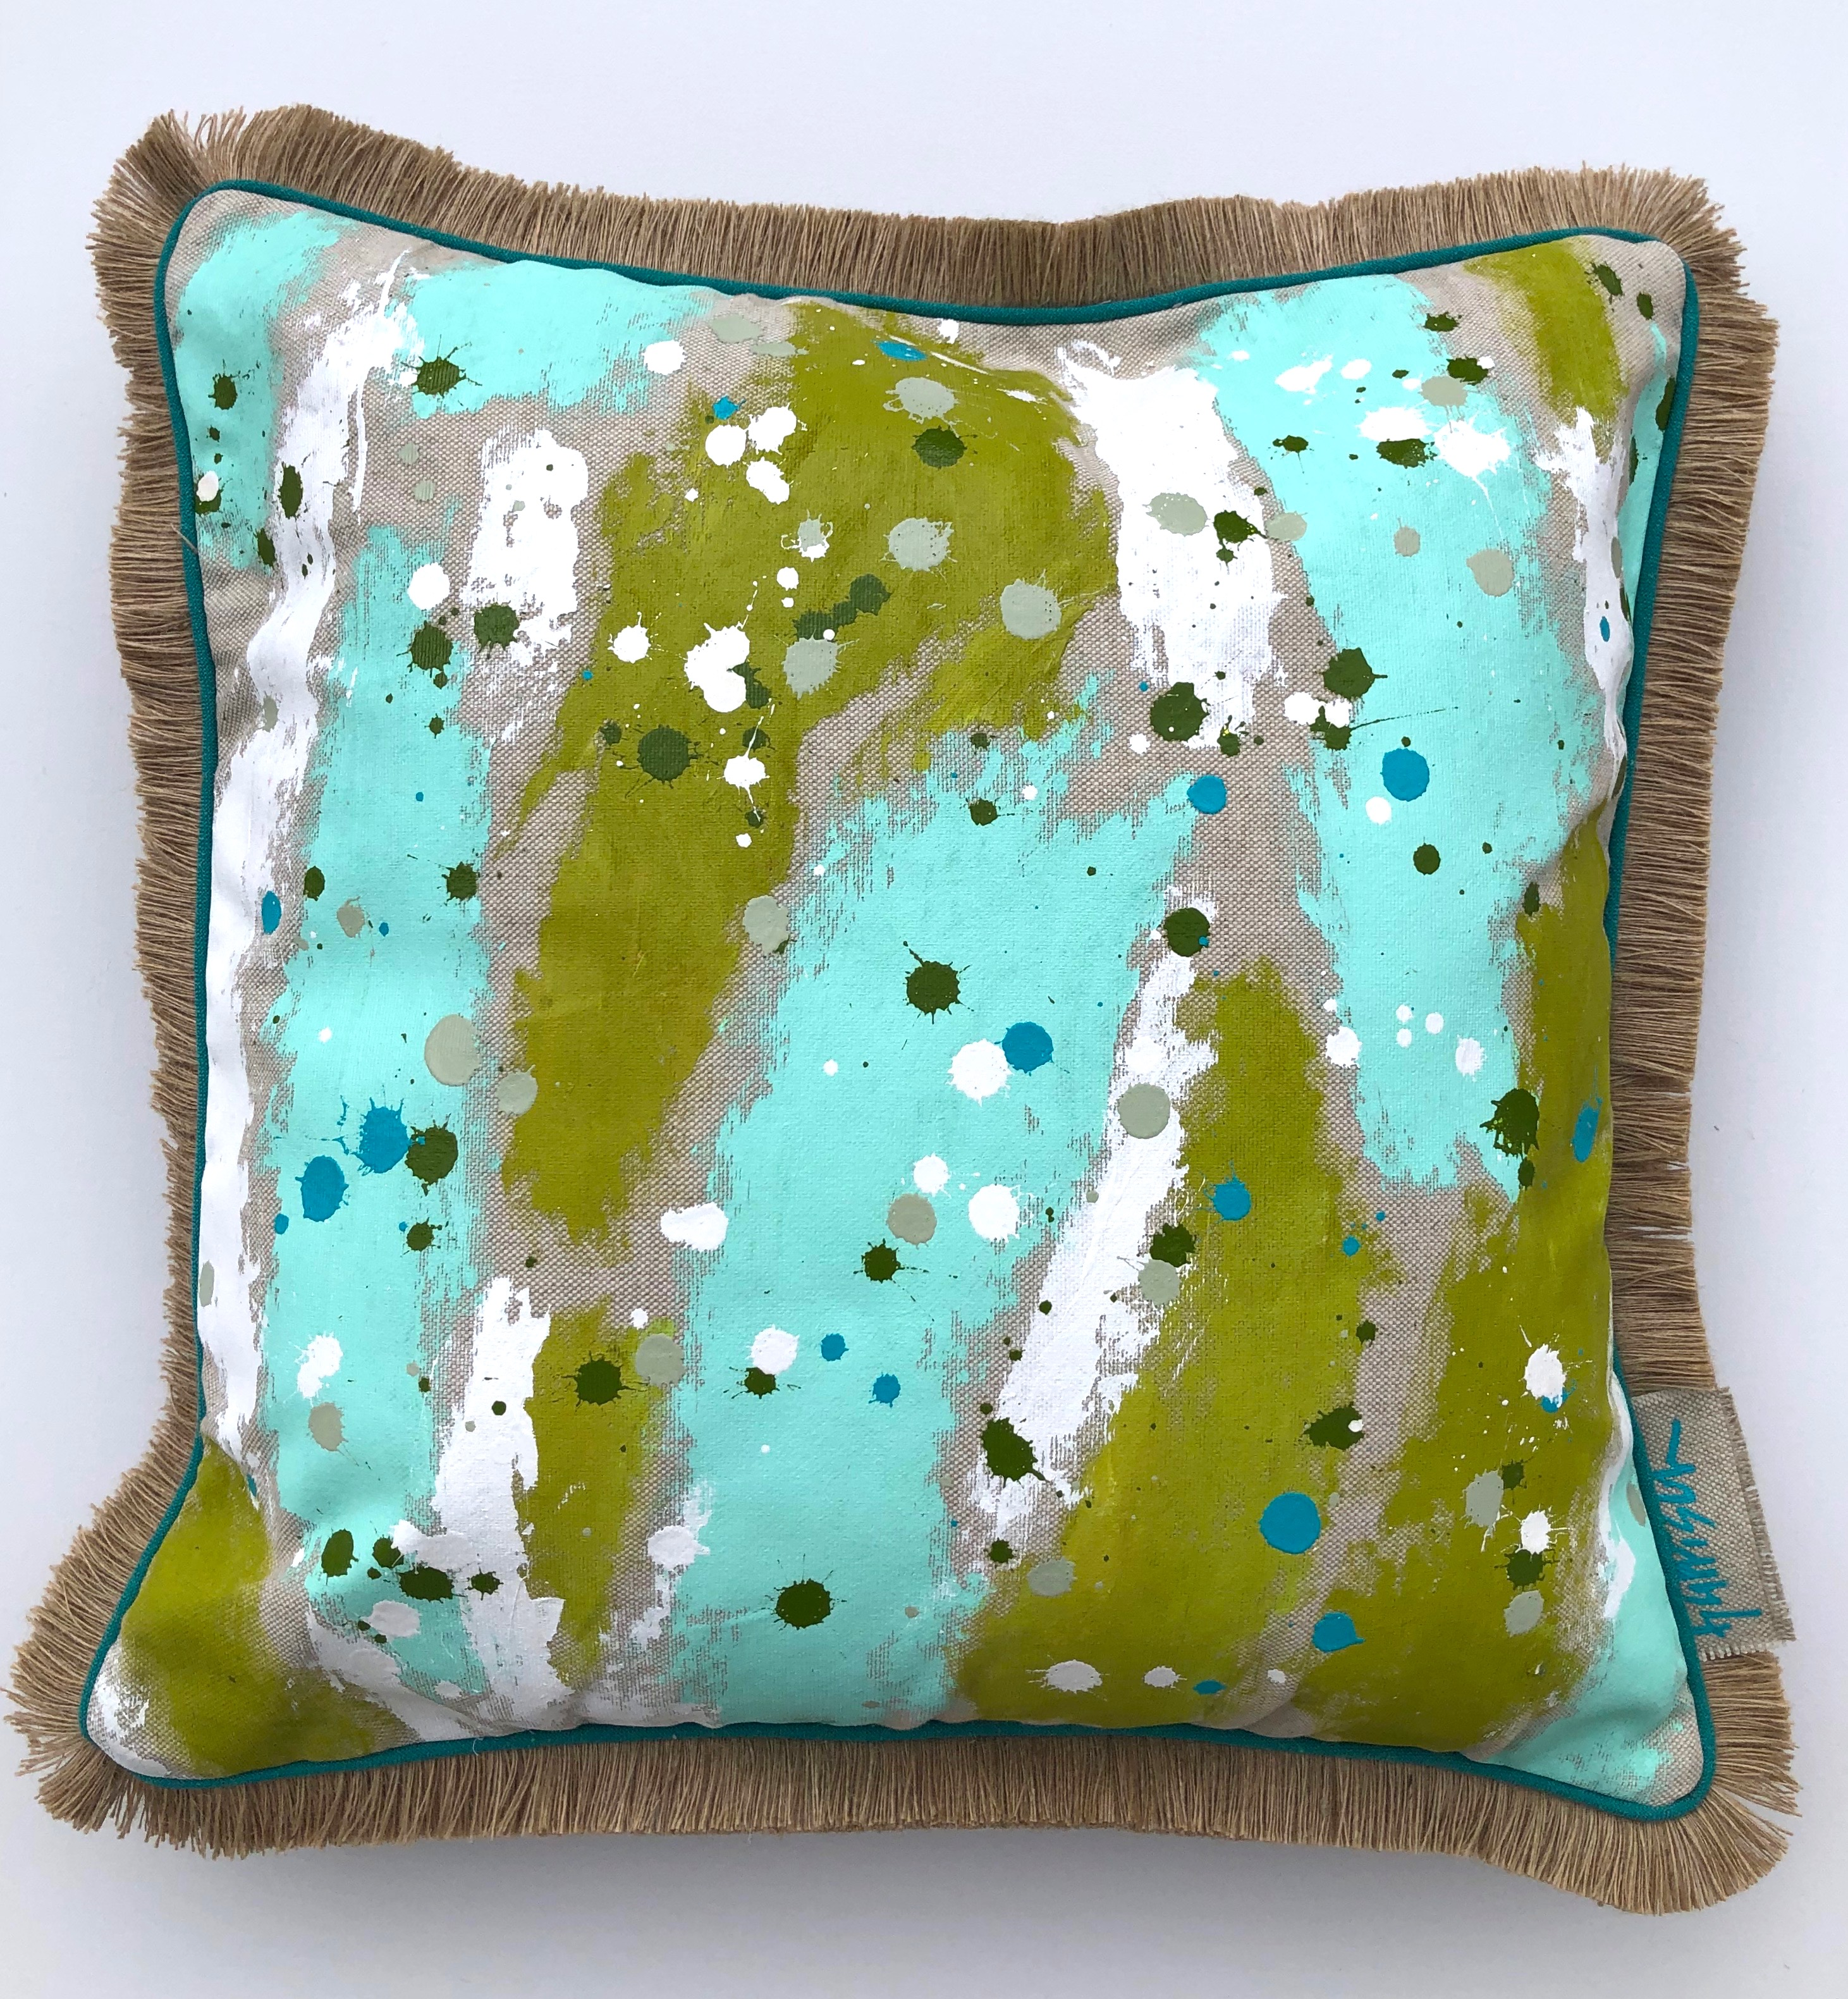 TIDAL WAVE PILLOW I